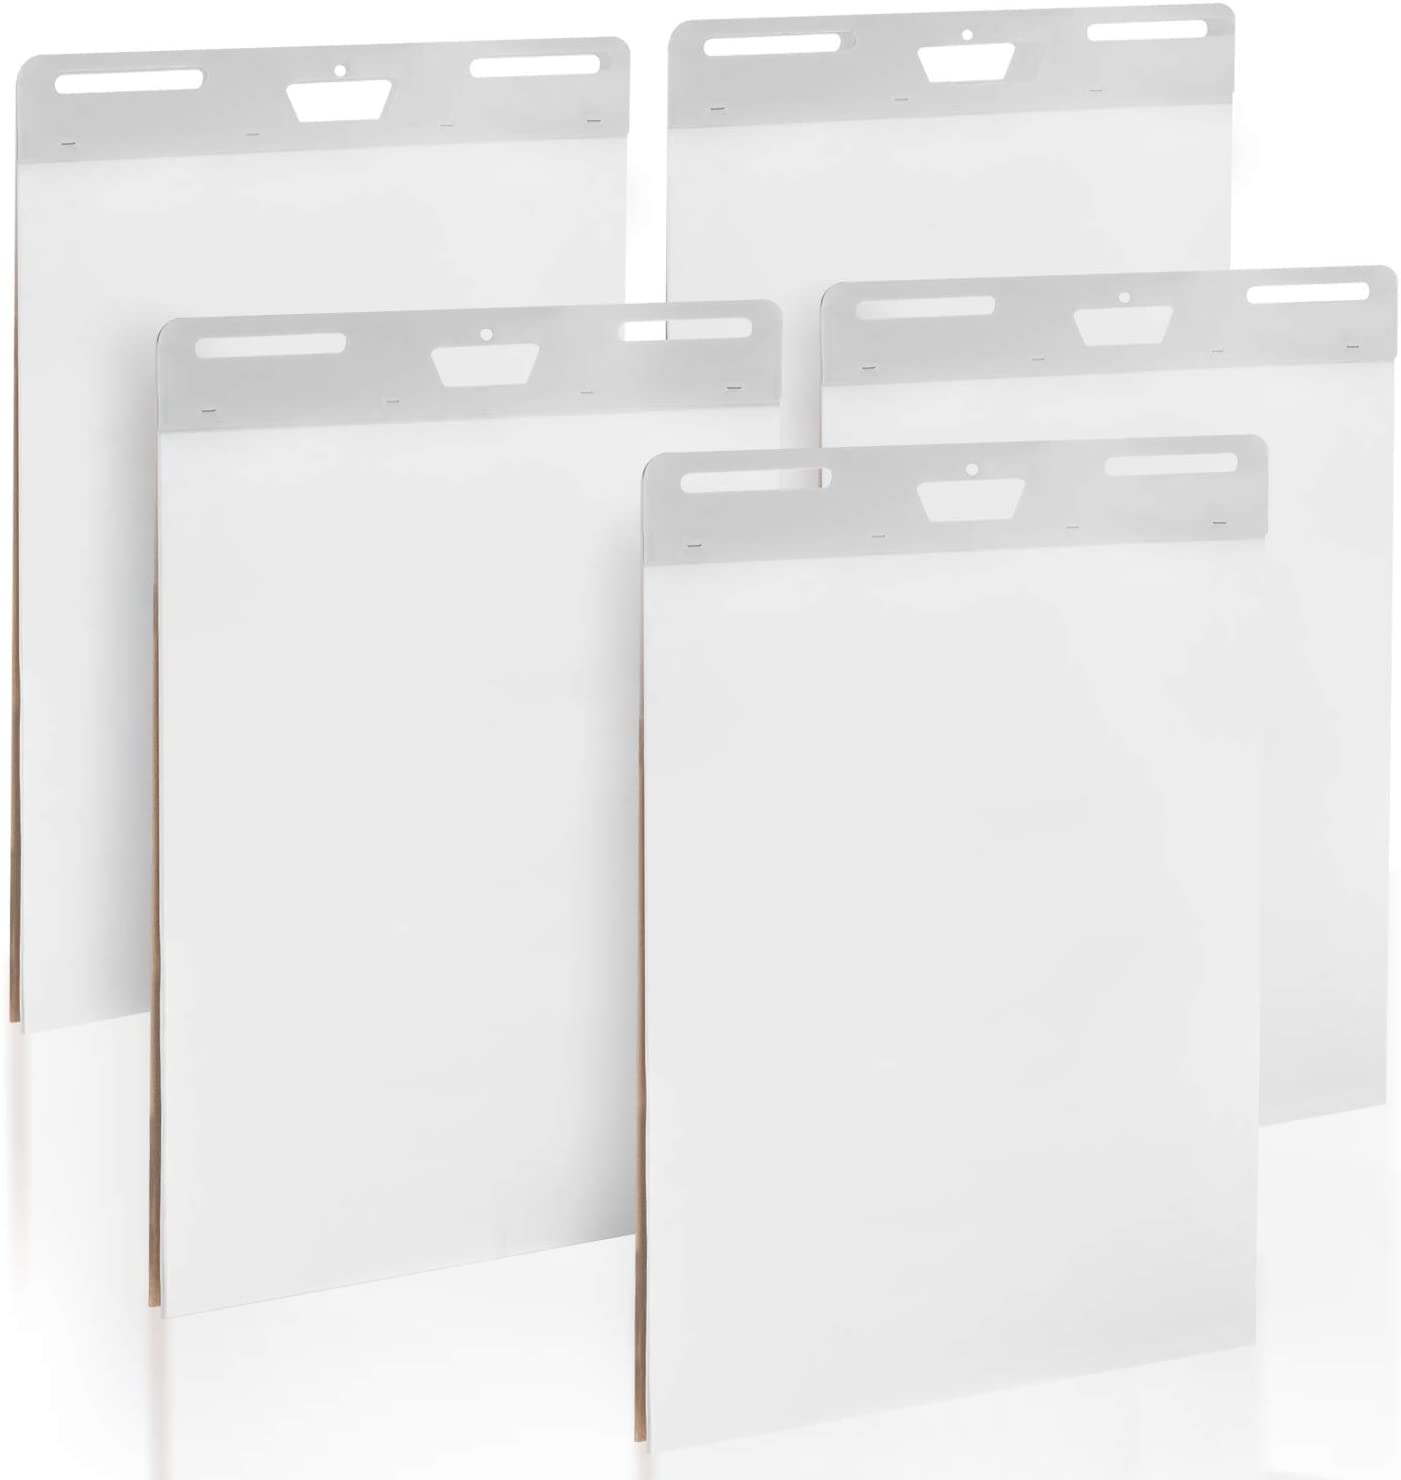 5-Pack of Premium Self-Stick Easel Pads - 25 x 30 Inches, 30 Sheets Per Pad - Thick Paper, Strong Staples, Sticky Easel Poster Chart Pads to Post on Walls - By IMPRESA